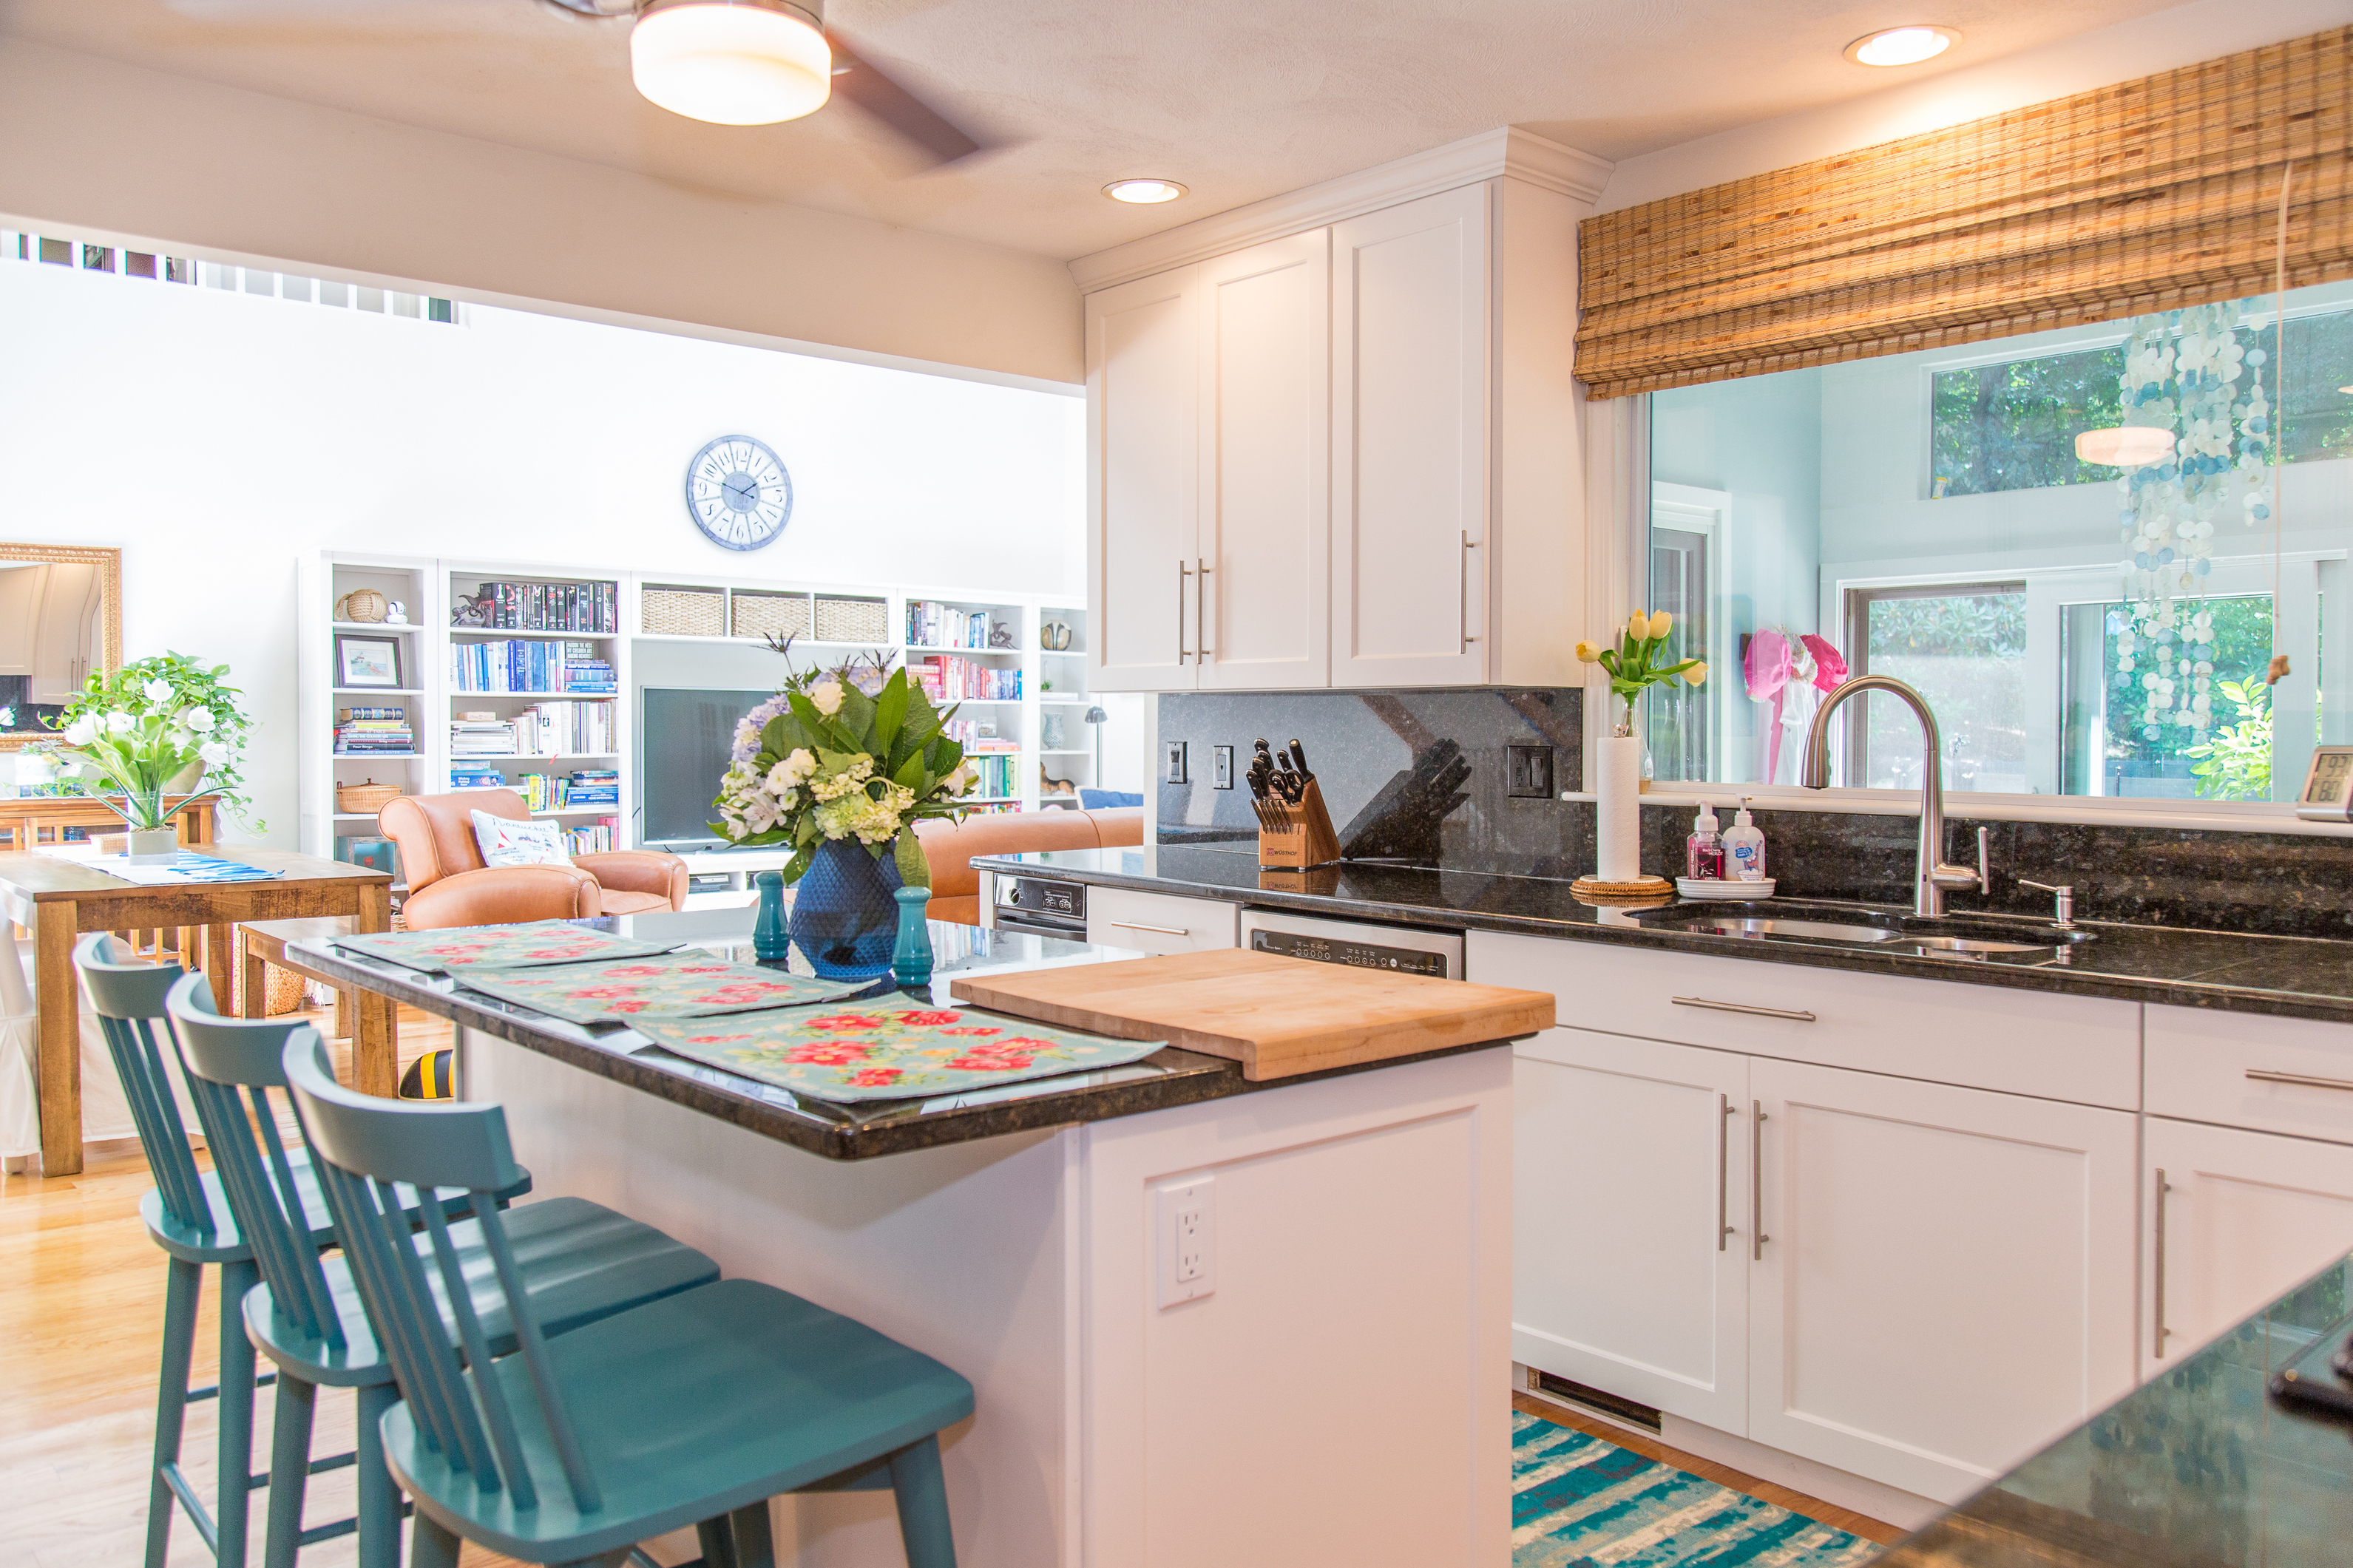 White Cabinetry with a black countertop and backsplash and light wood flooring